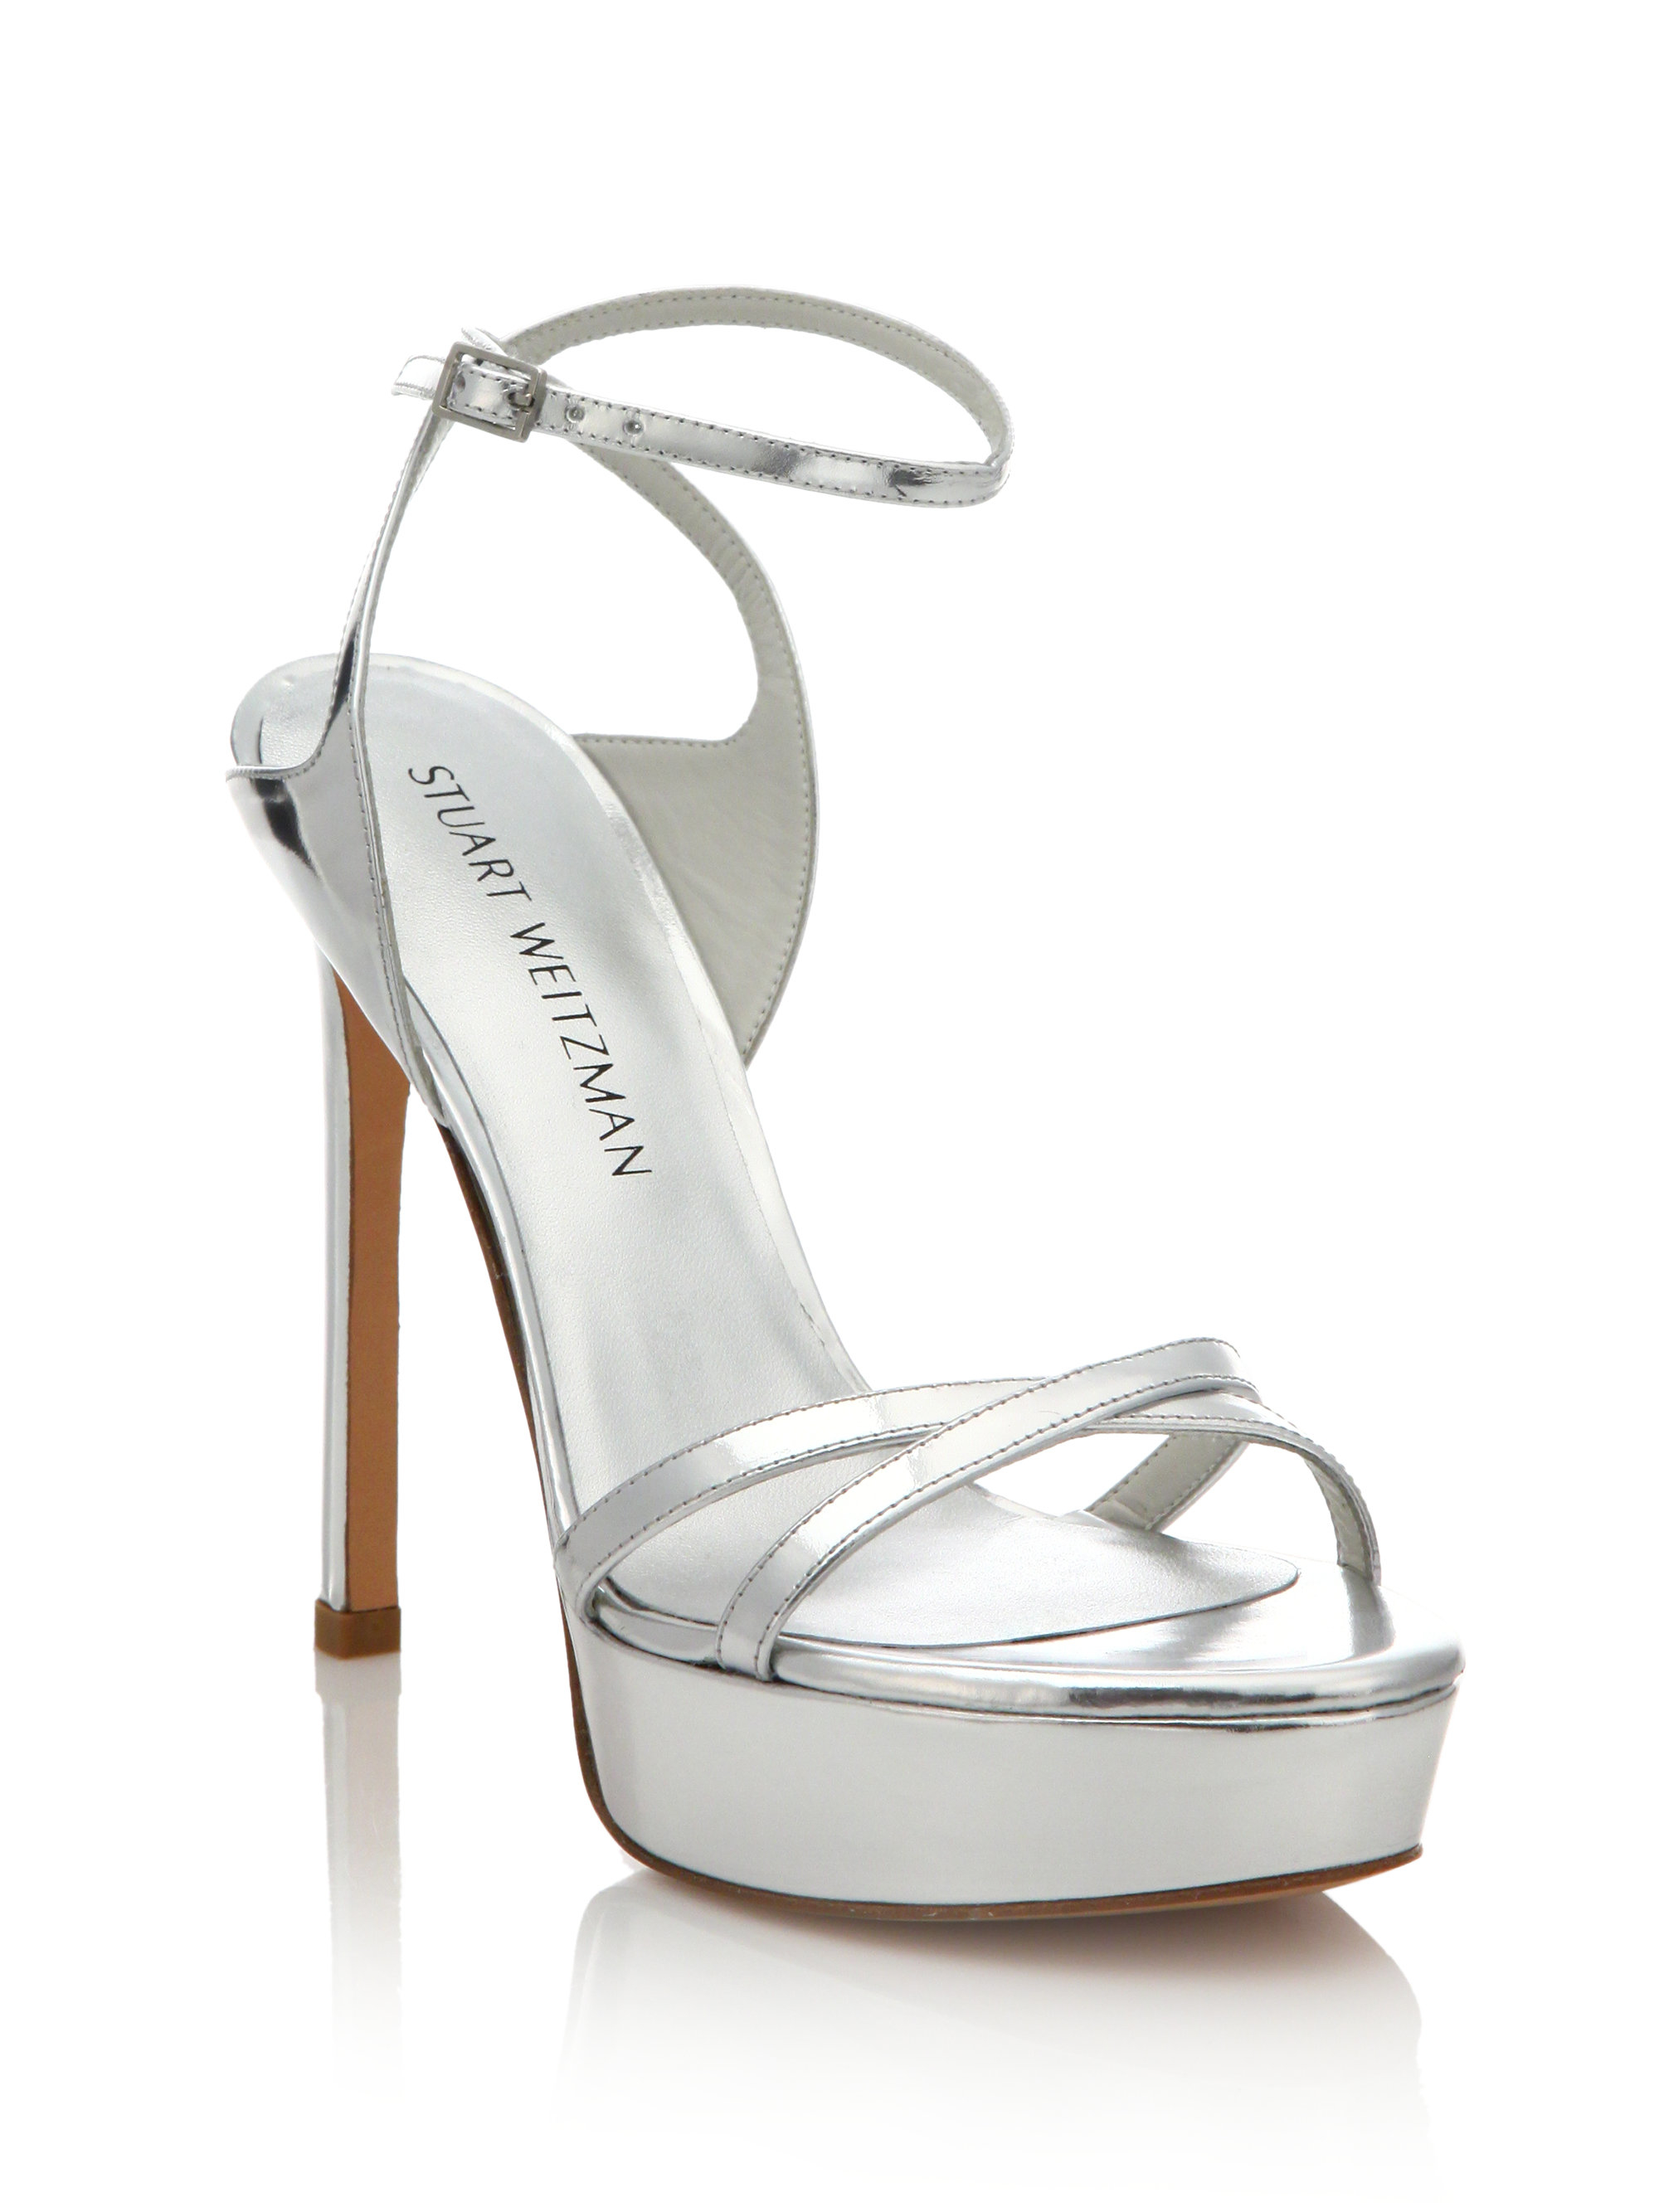 Be Bare Metallic Platform Sandals Stuart Weitzman Silver Sandals Shoes